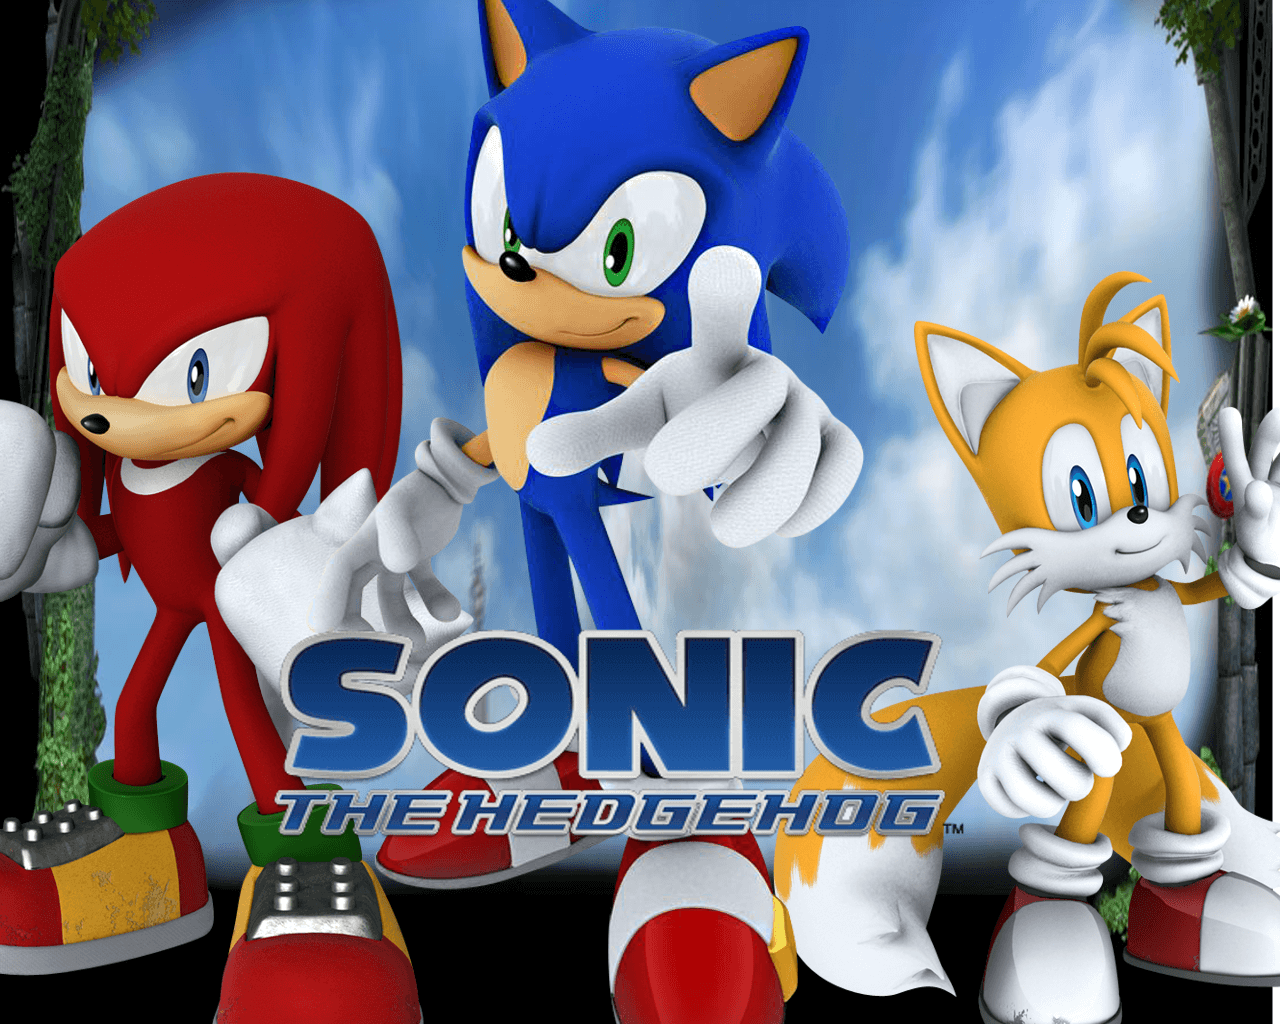 Sonic The Hedgehog Wallpapers 2016 - Wallpaper Cave